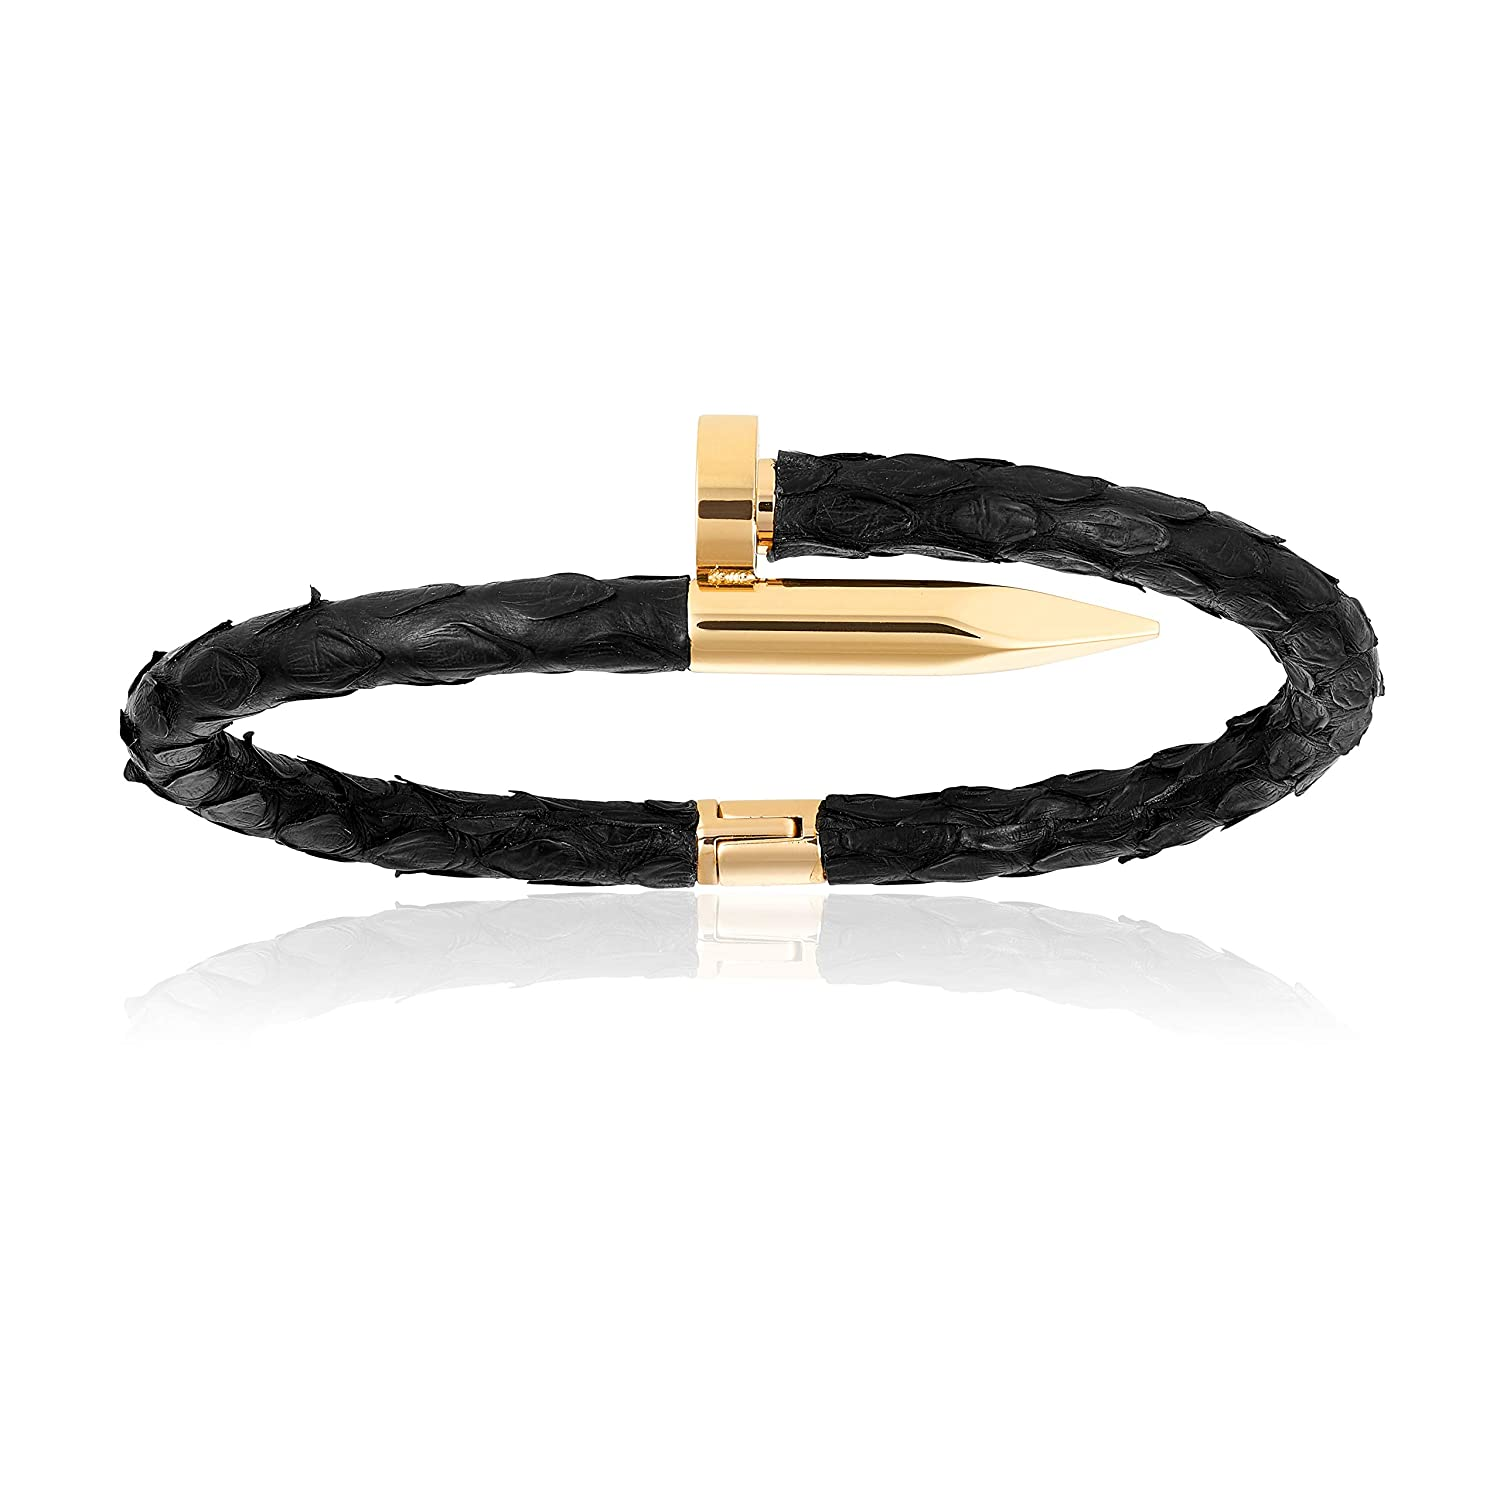 fe7c3247d21 Amazon.com: Double Bone Black Genuine Python Leather Bracelet with Yellow  Gold Nail Unisex (17): Jewelry